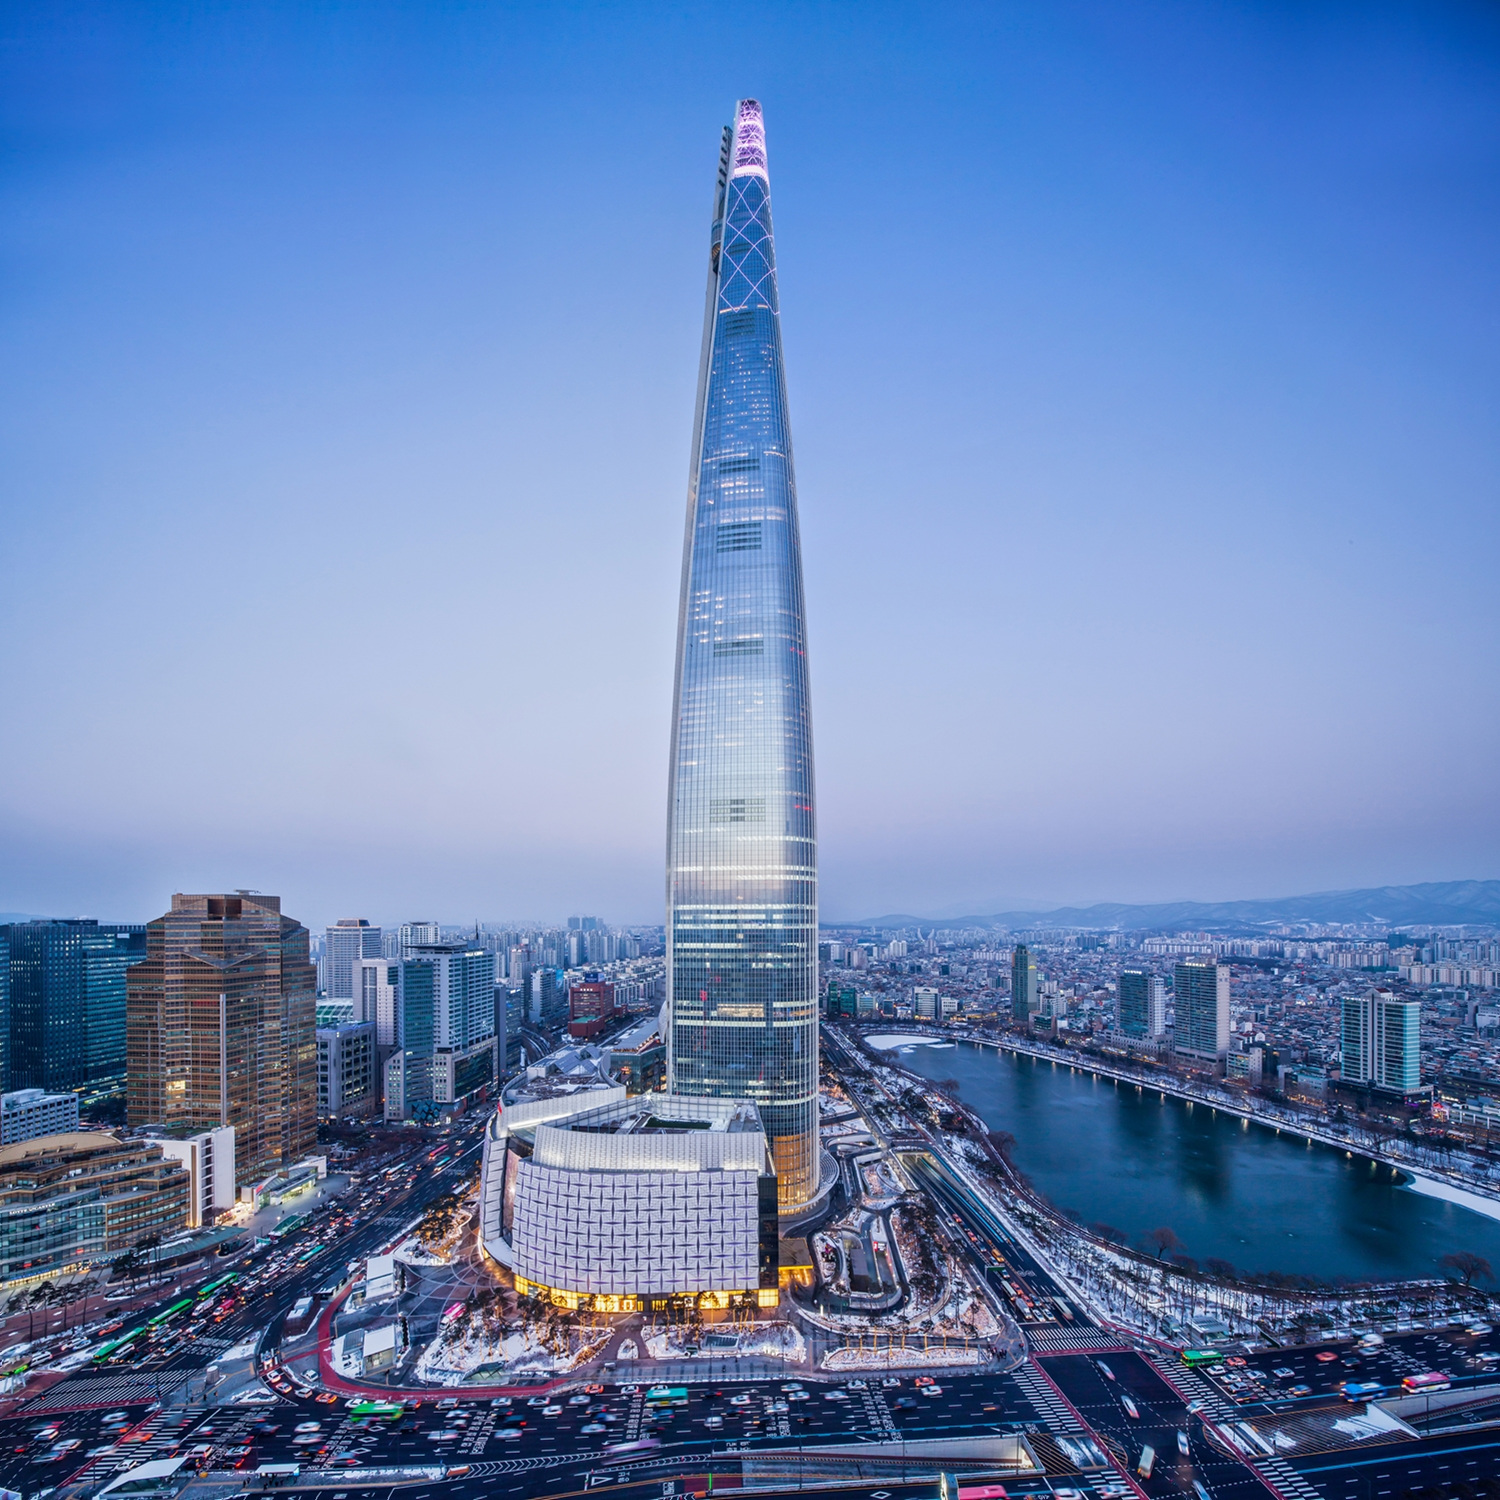 The front view of Lotte World Tower.